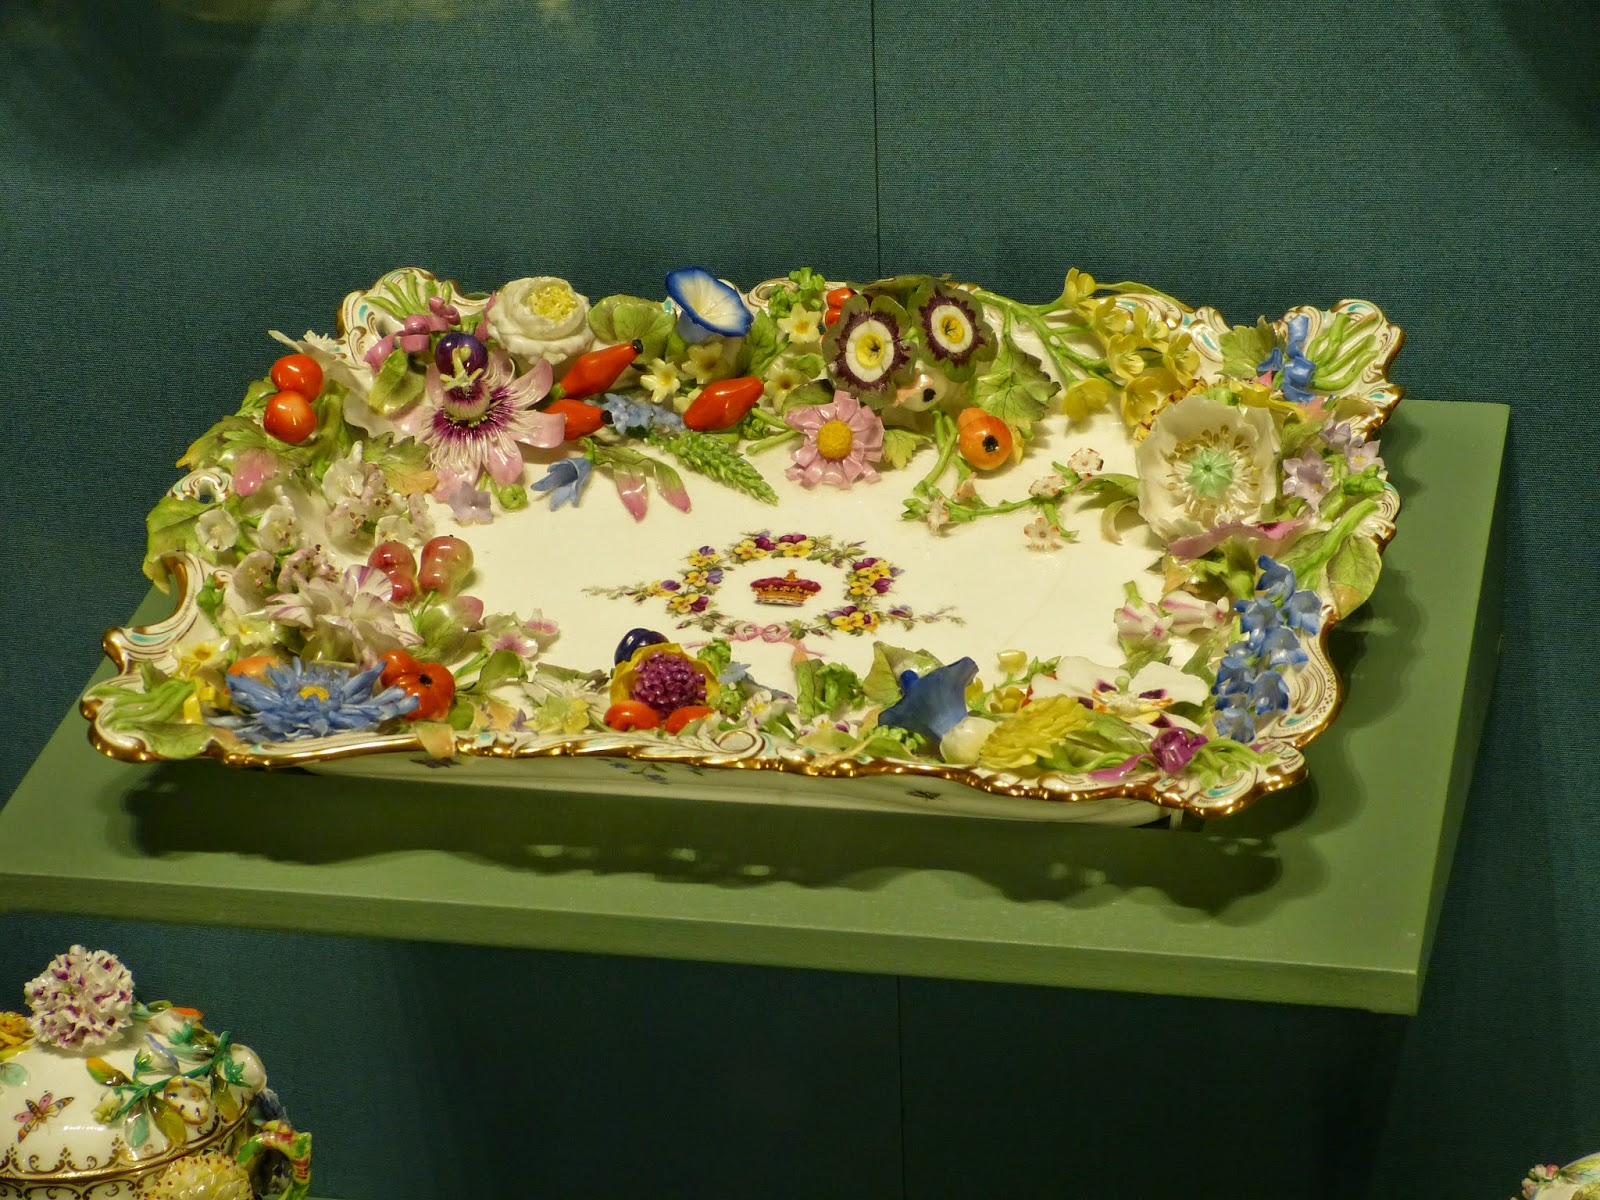 Minton soft porcelain pen tray (c1833)  belonging to the young Queen Victoria